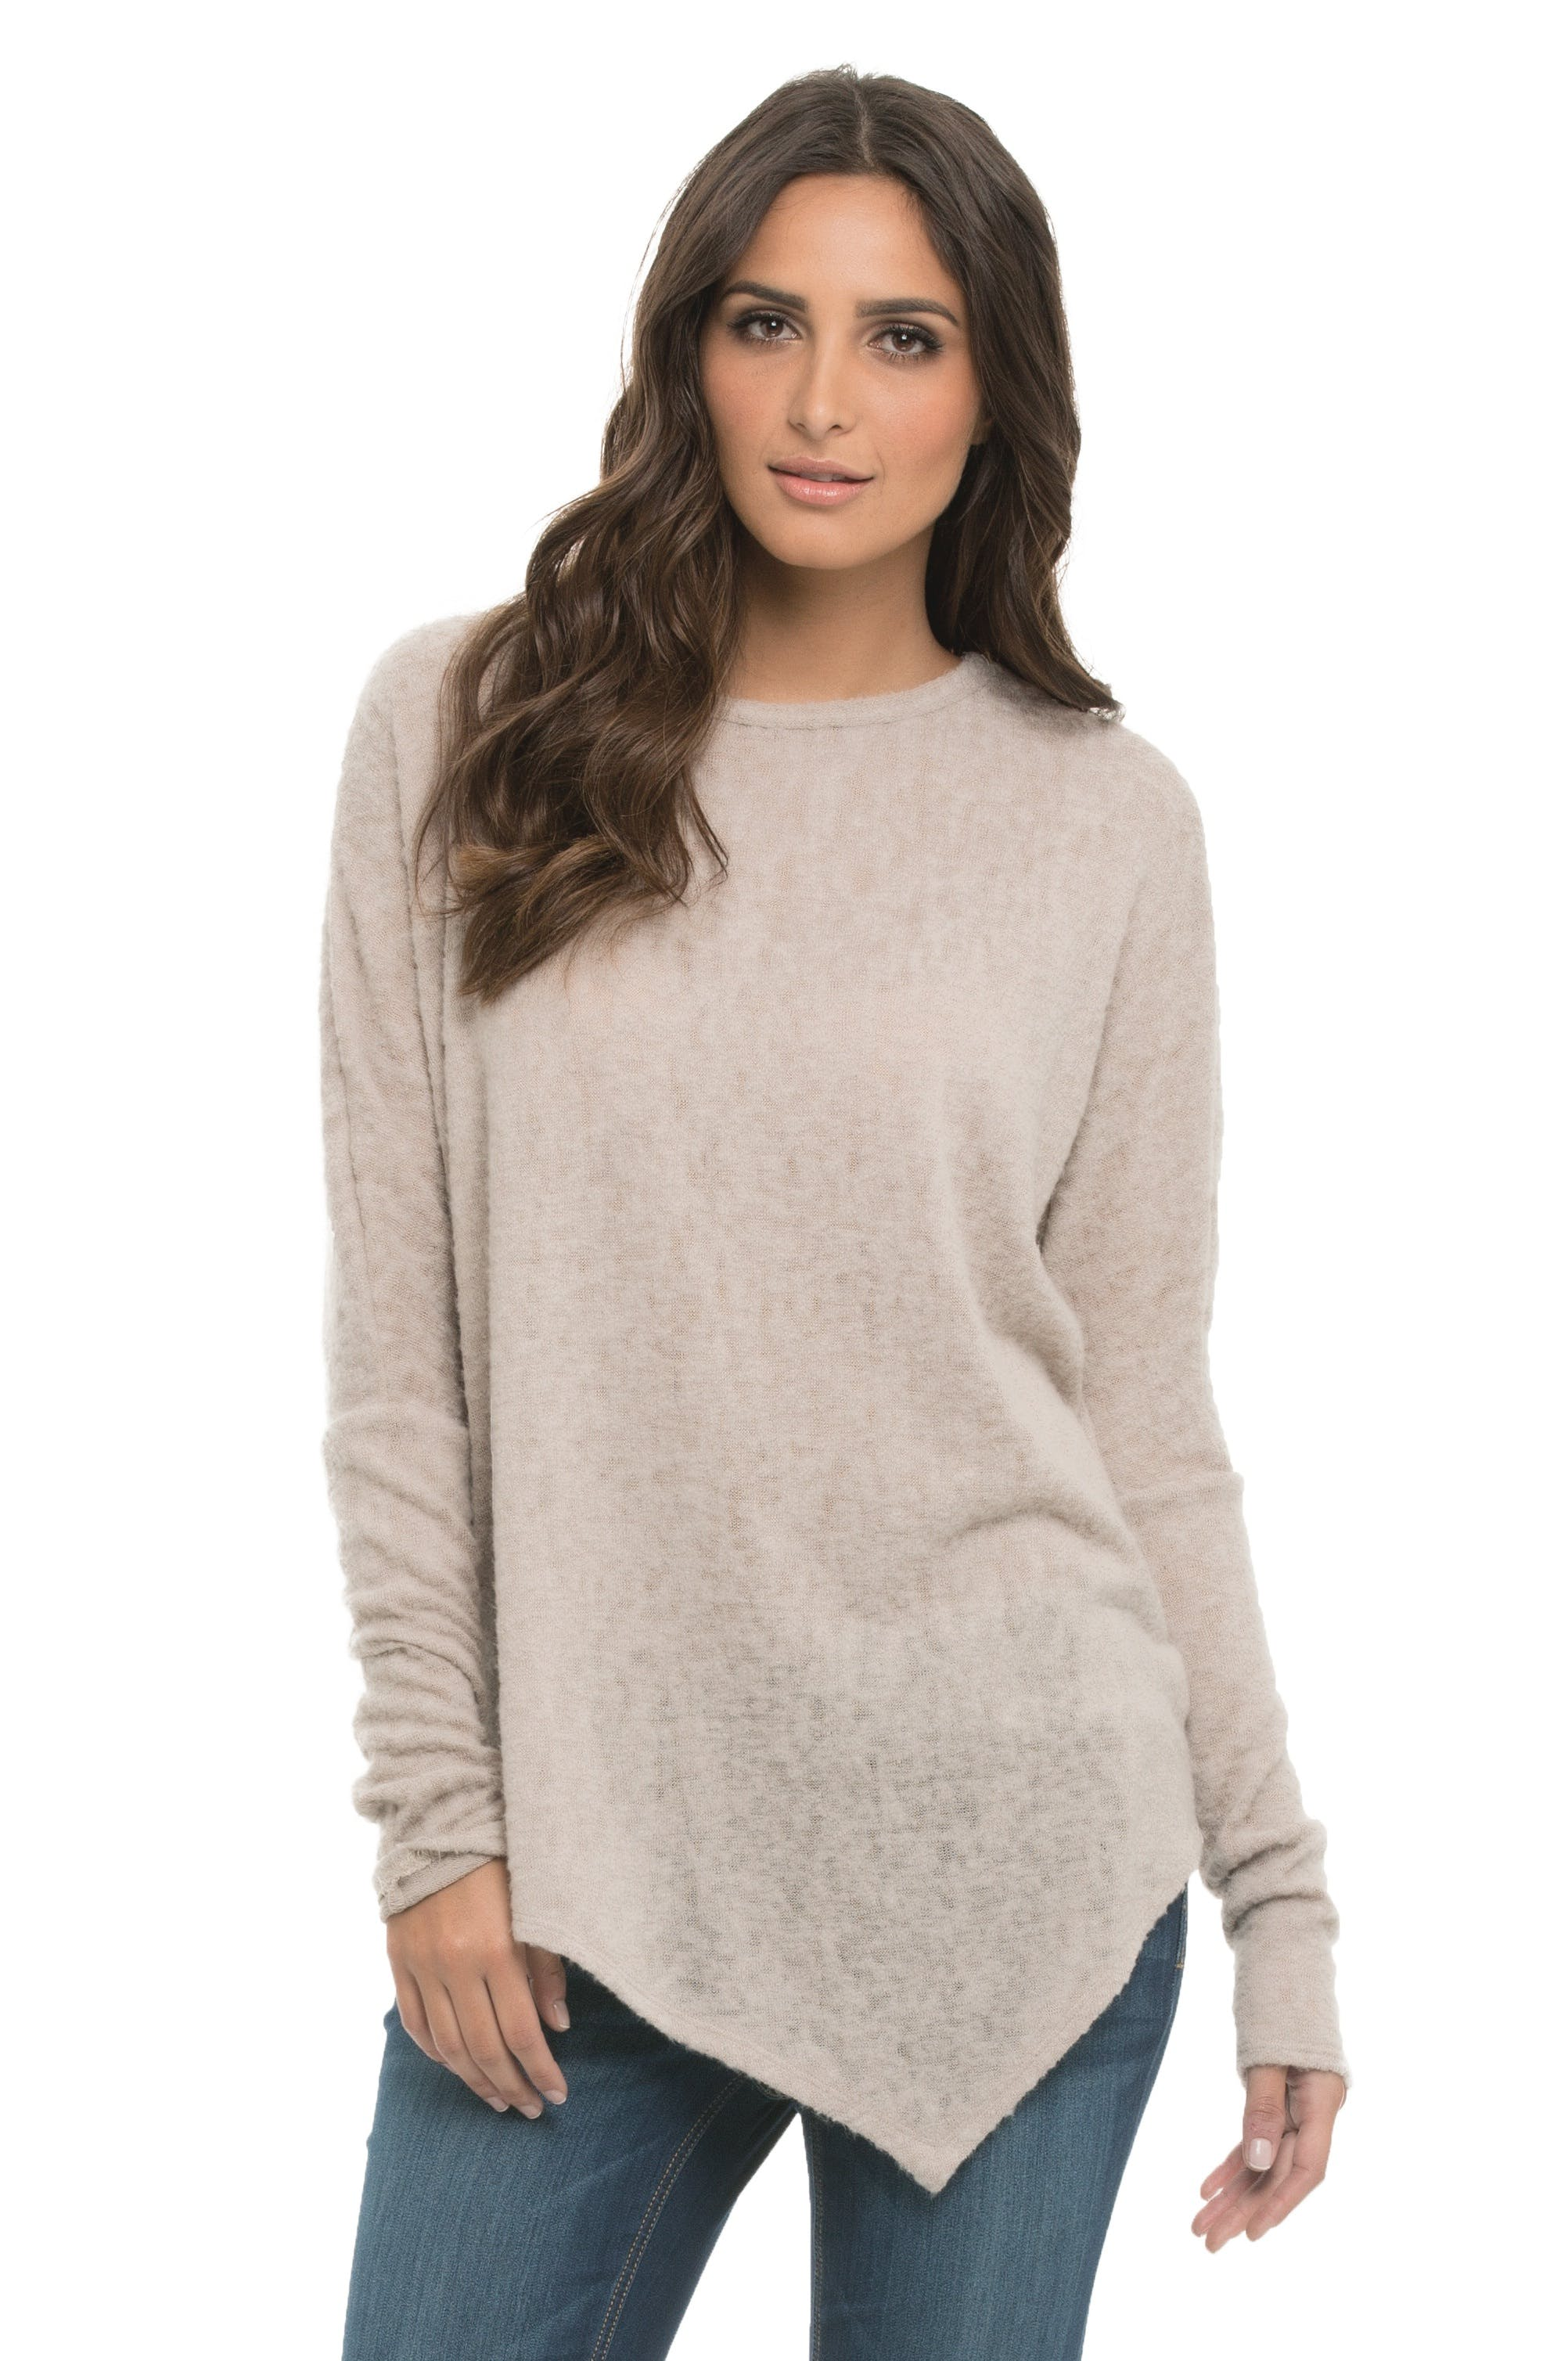 Woman Wearing Grey Crew-neck Sweater and Blue Jeans